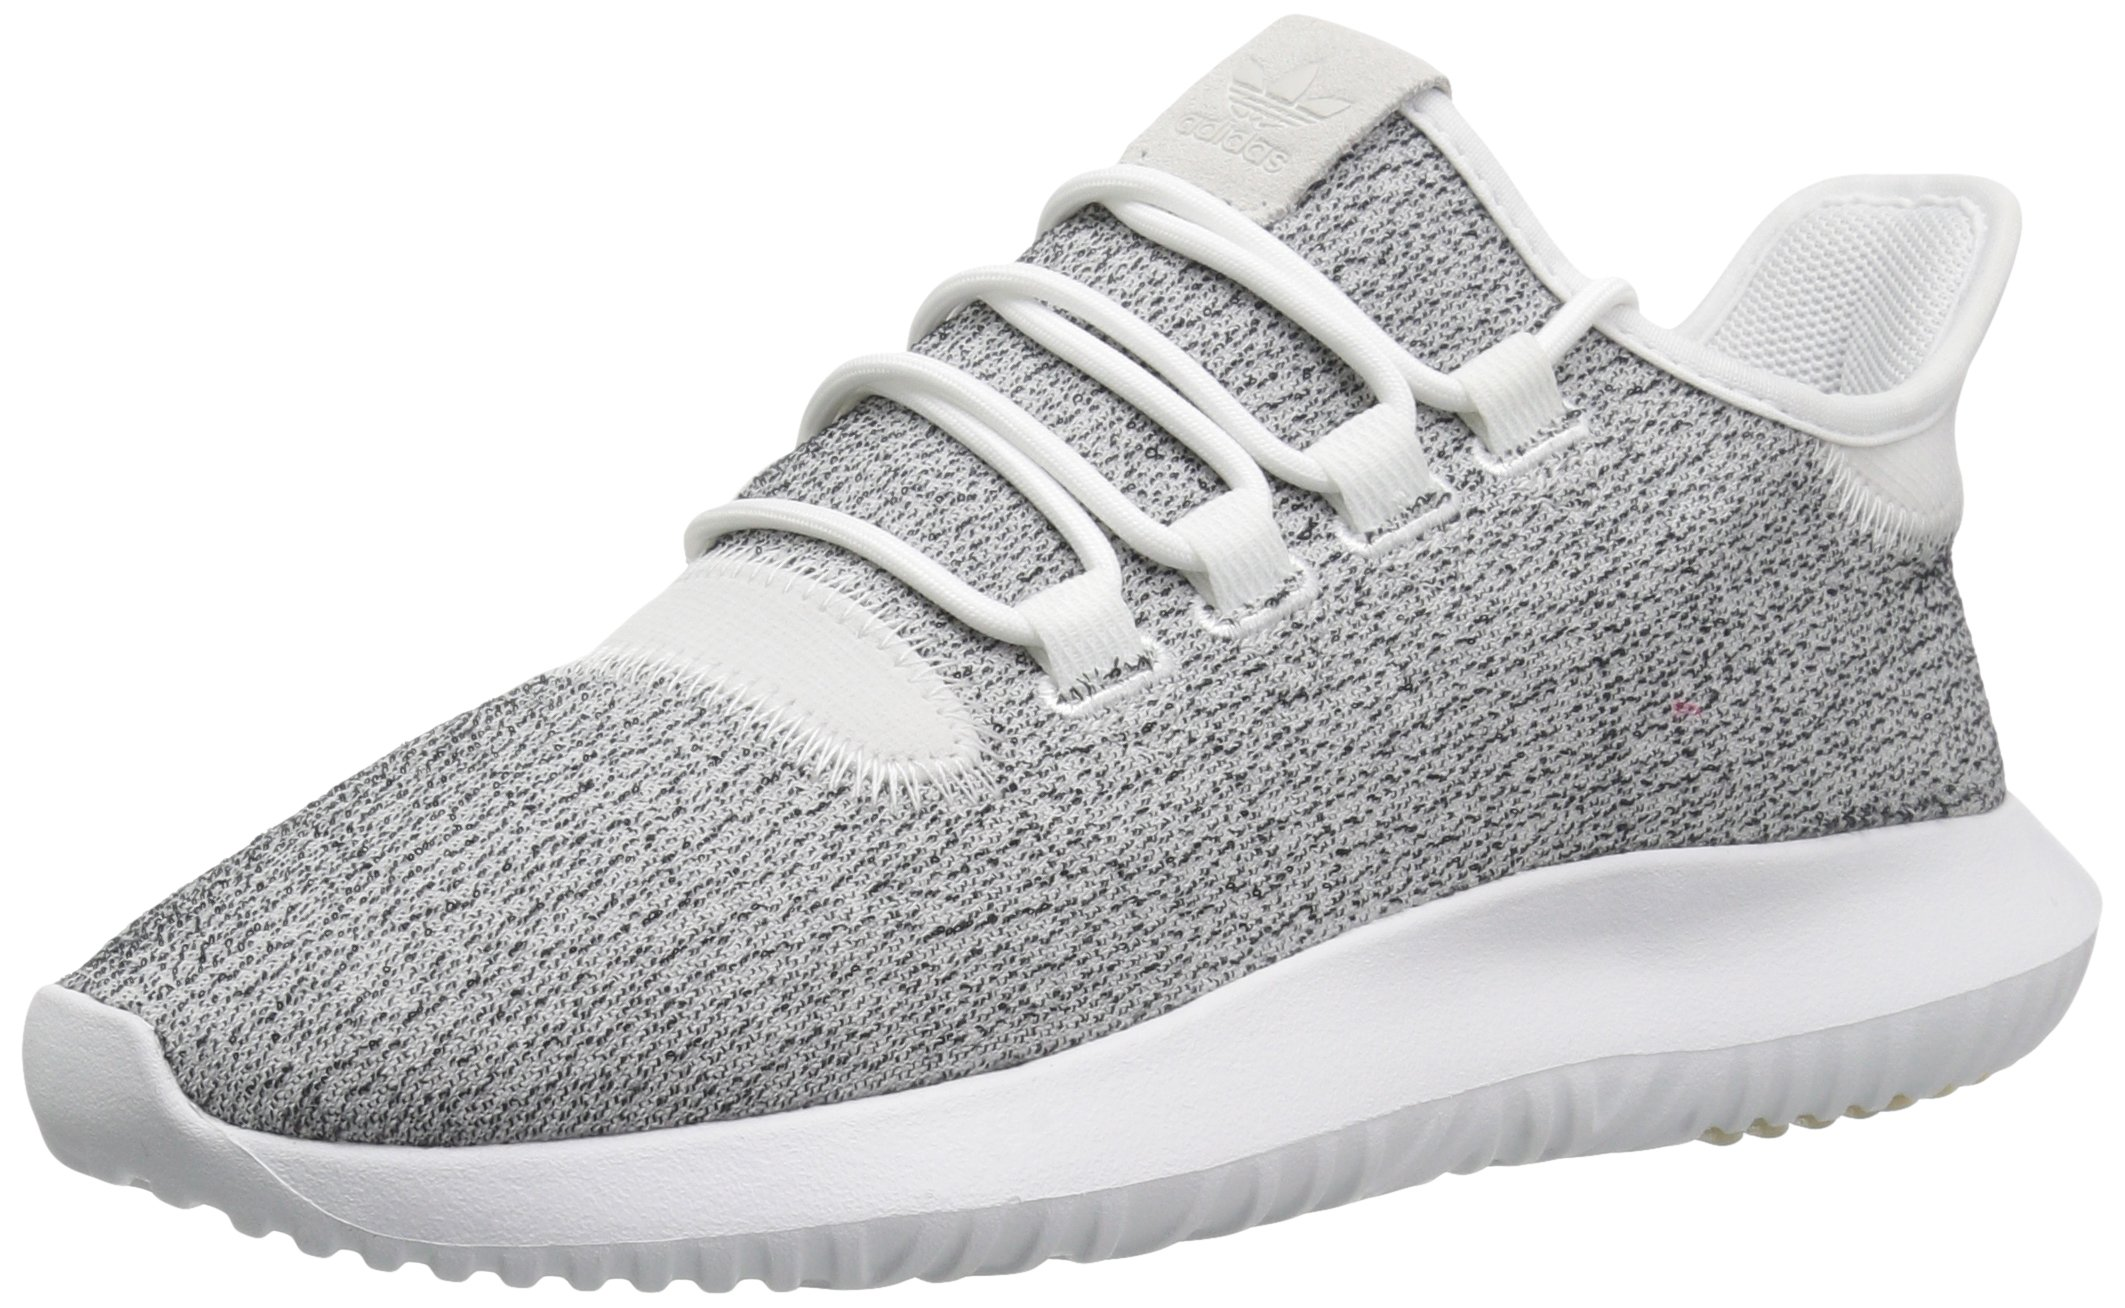 b6b112b64b6c Galleon - Adidas Men s Tubular Shadow Sneaker